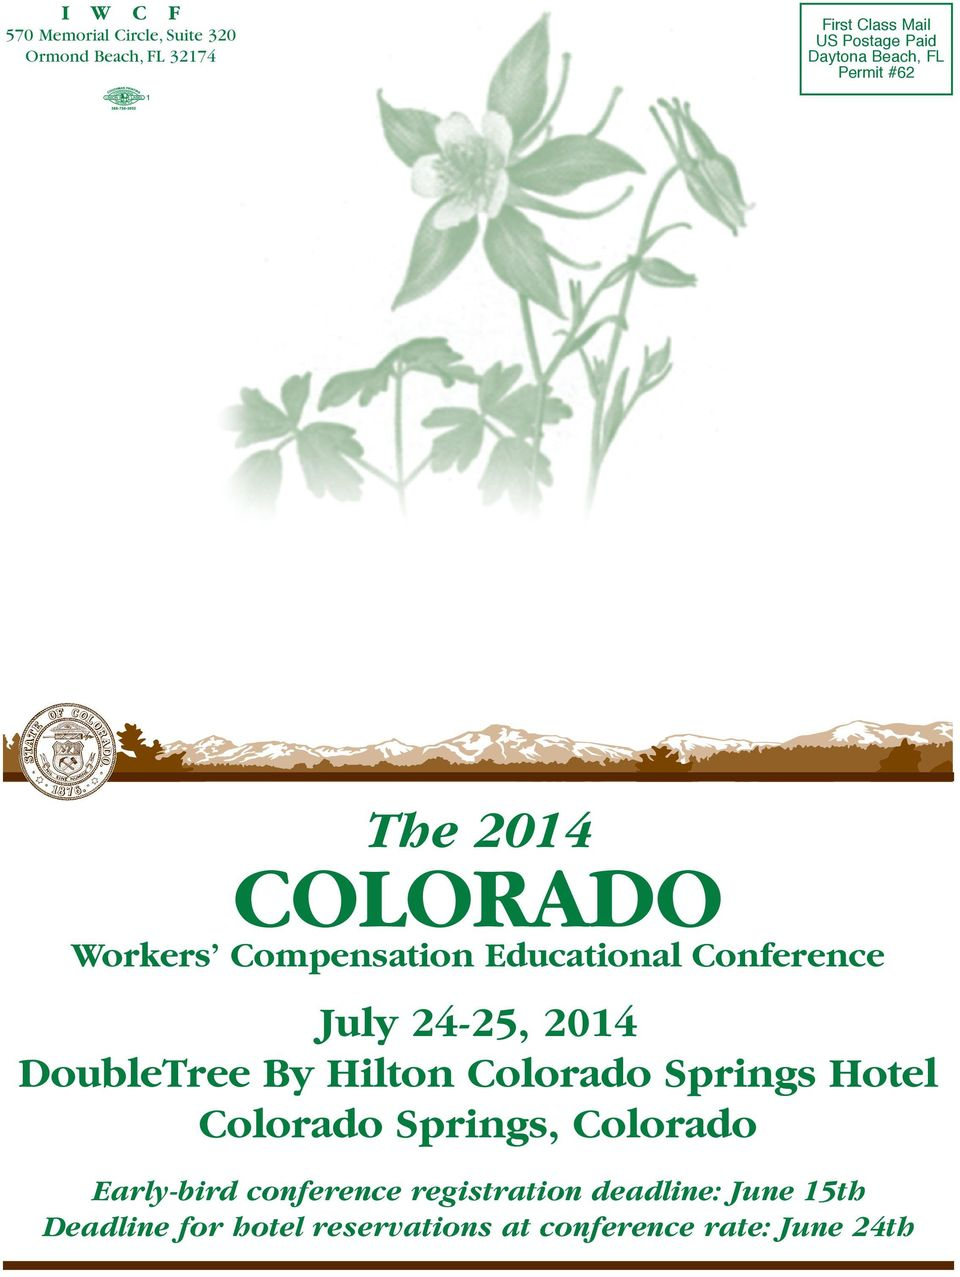 Conference DoubleTree By Hilton Colorado Springs Hotel Colorado Springs, Colorado Early-bird